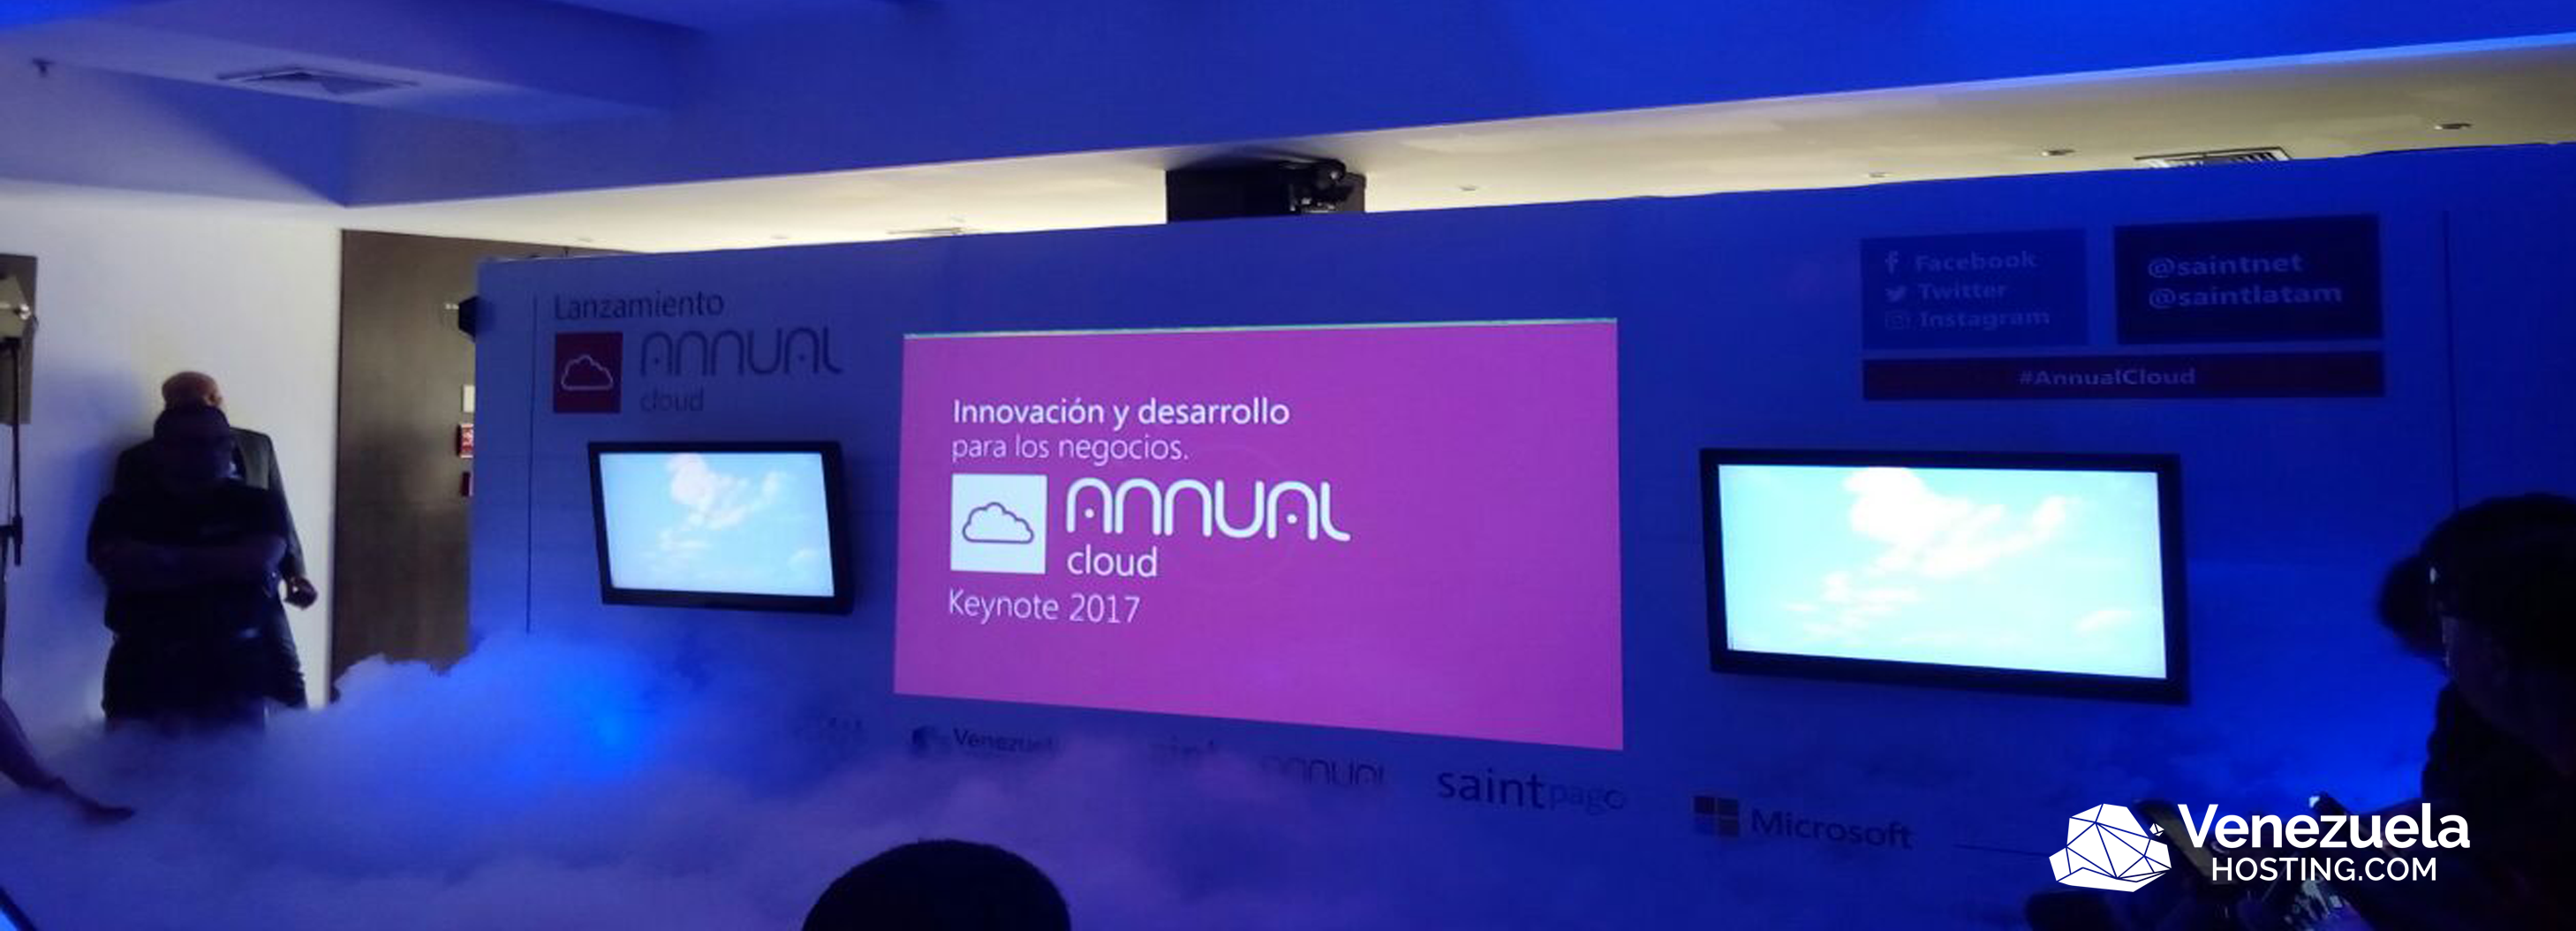 evento annual cloud